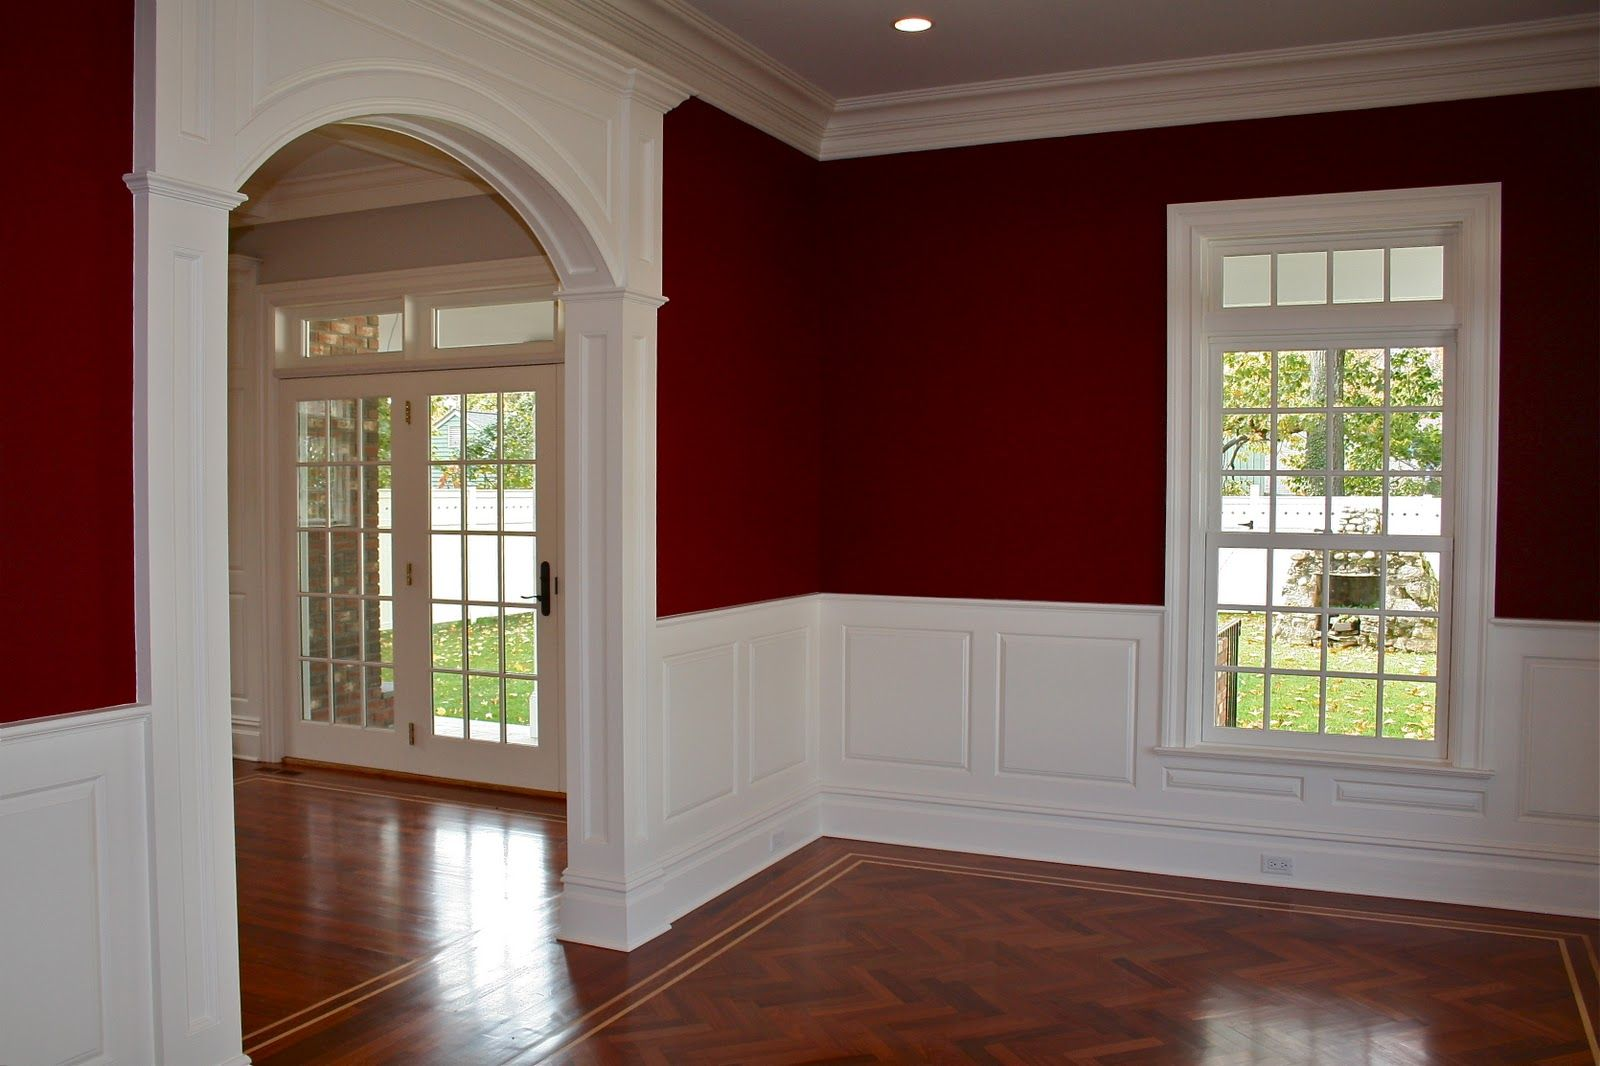 114 Reference Of Dining Room Decor Red Benjamin Moore In 2020 Dining Room Colors Red Dining Room Red Paint Colors